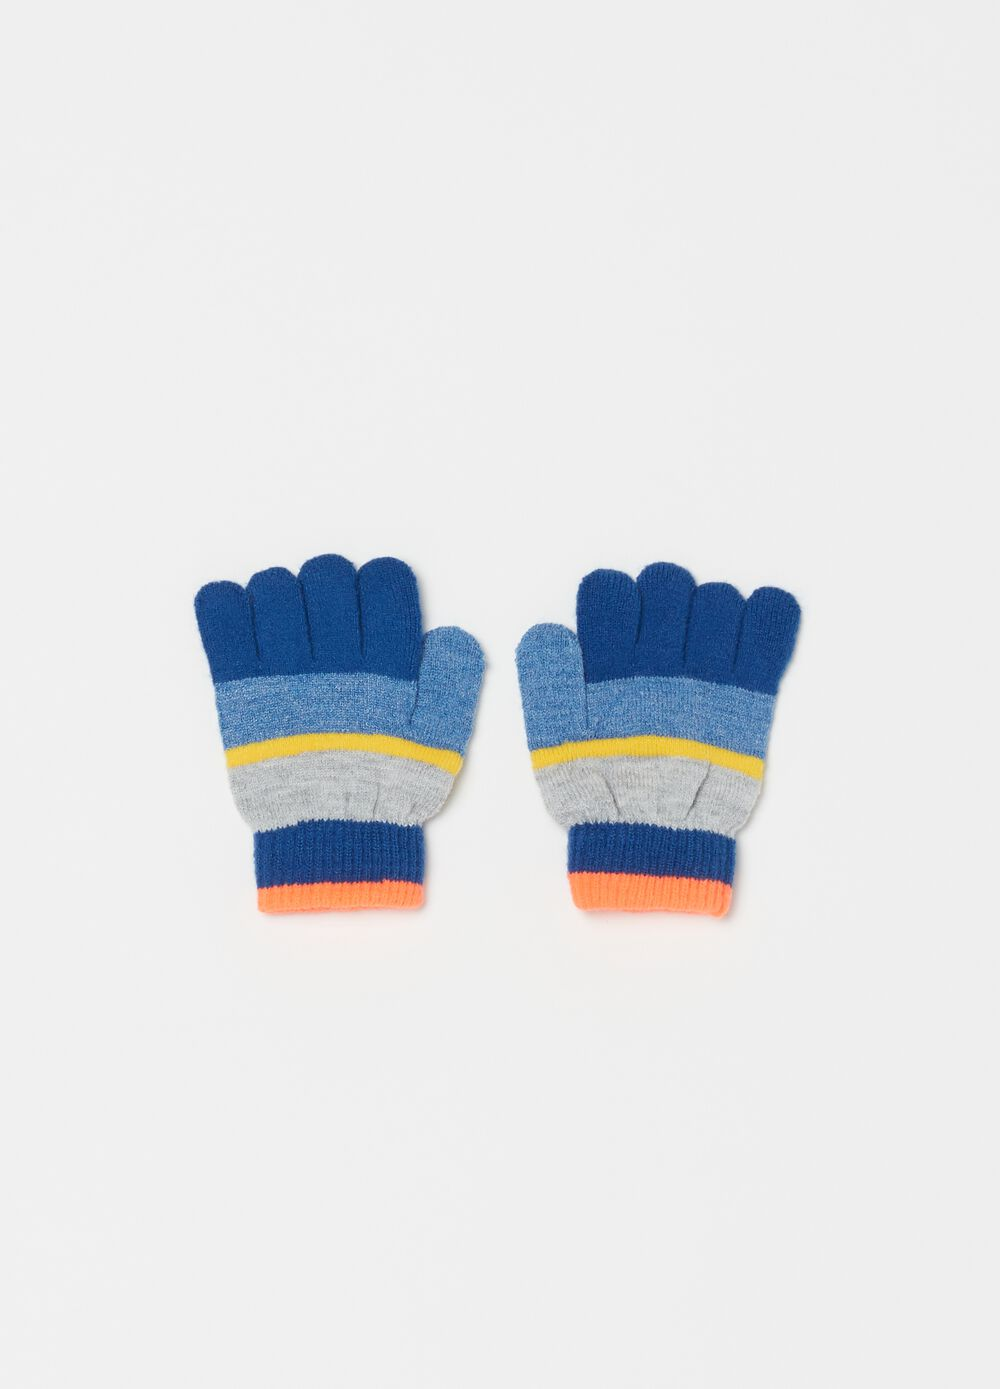 Ribbed knit gloves with striped pattern